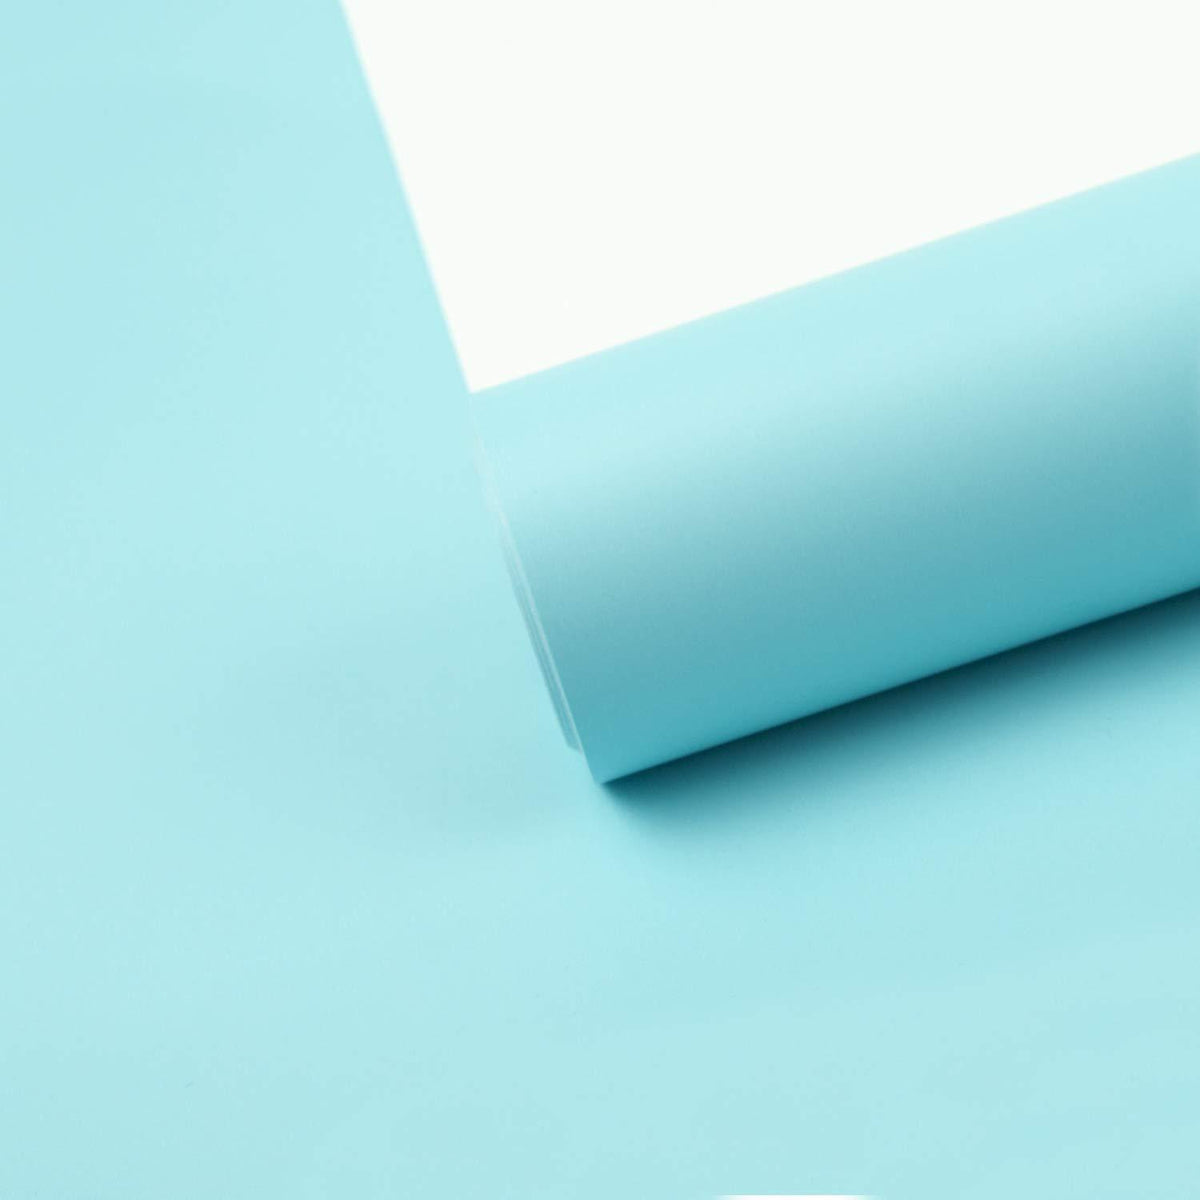 wrapaholic-glossy-light-blue-gift-wrap-roll-1